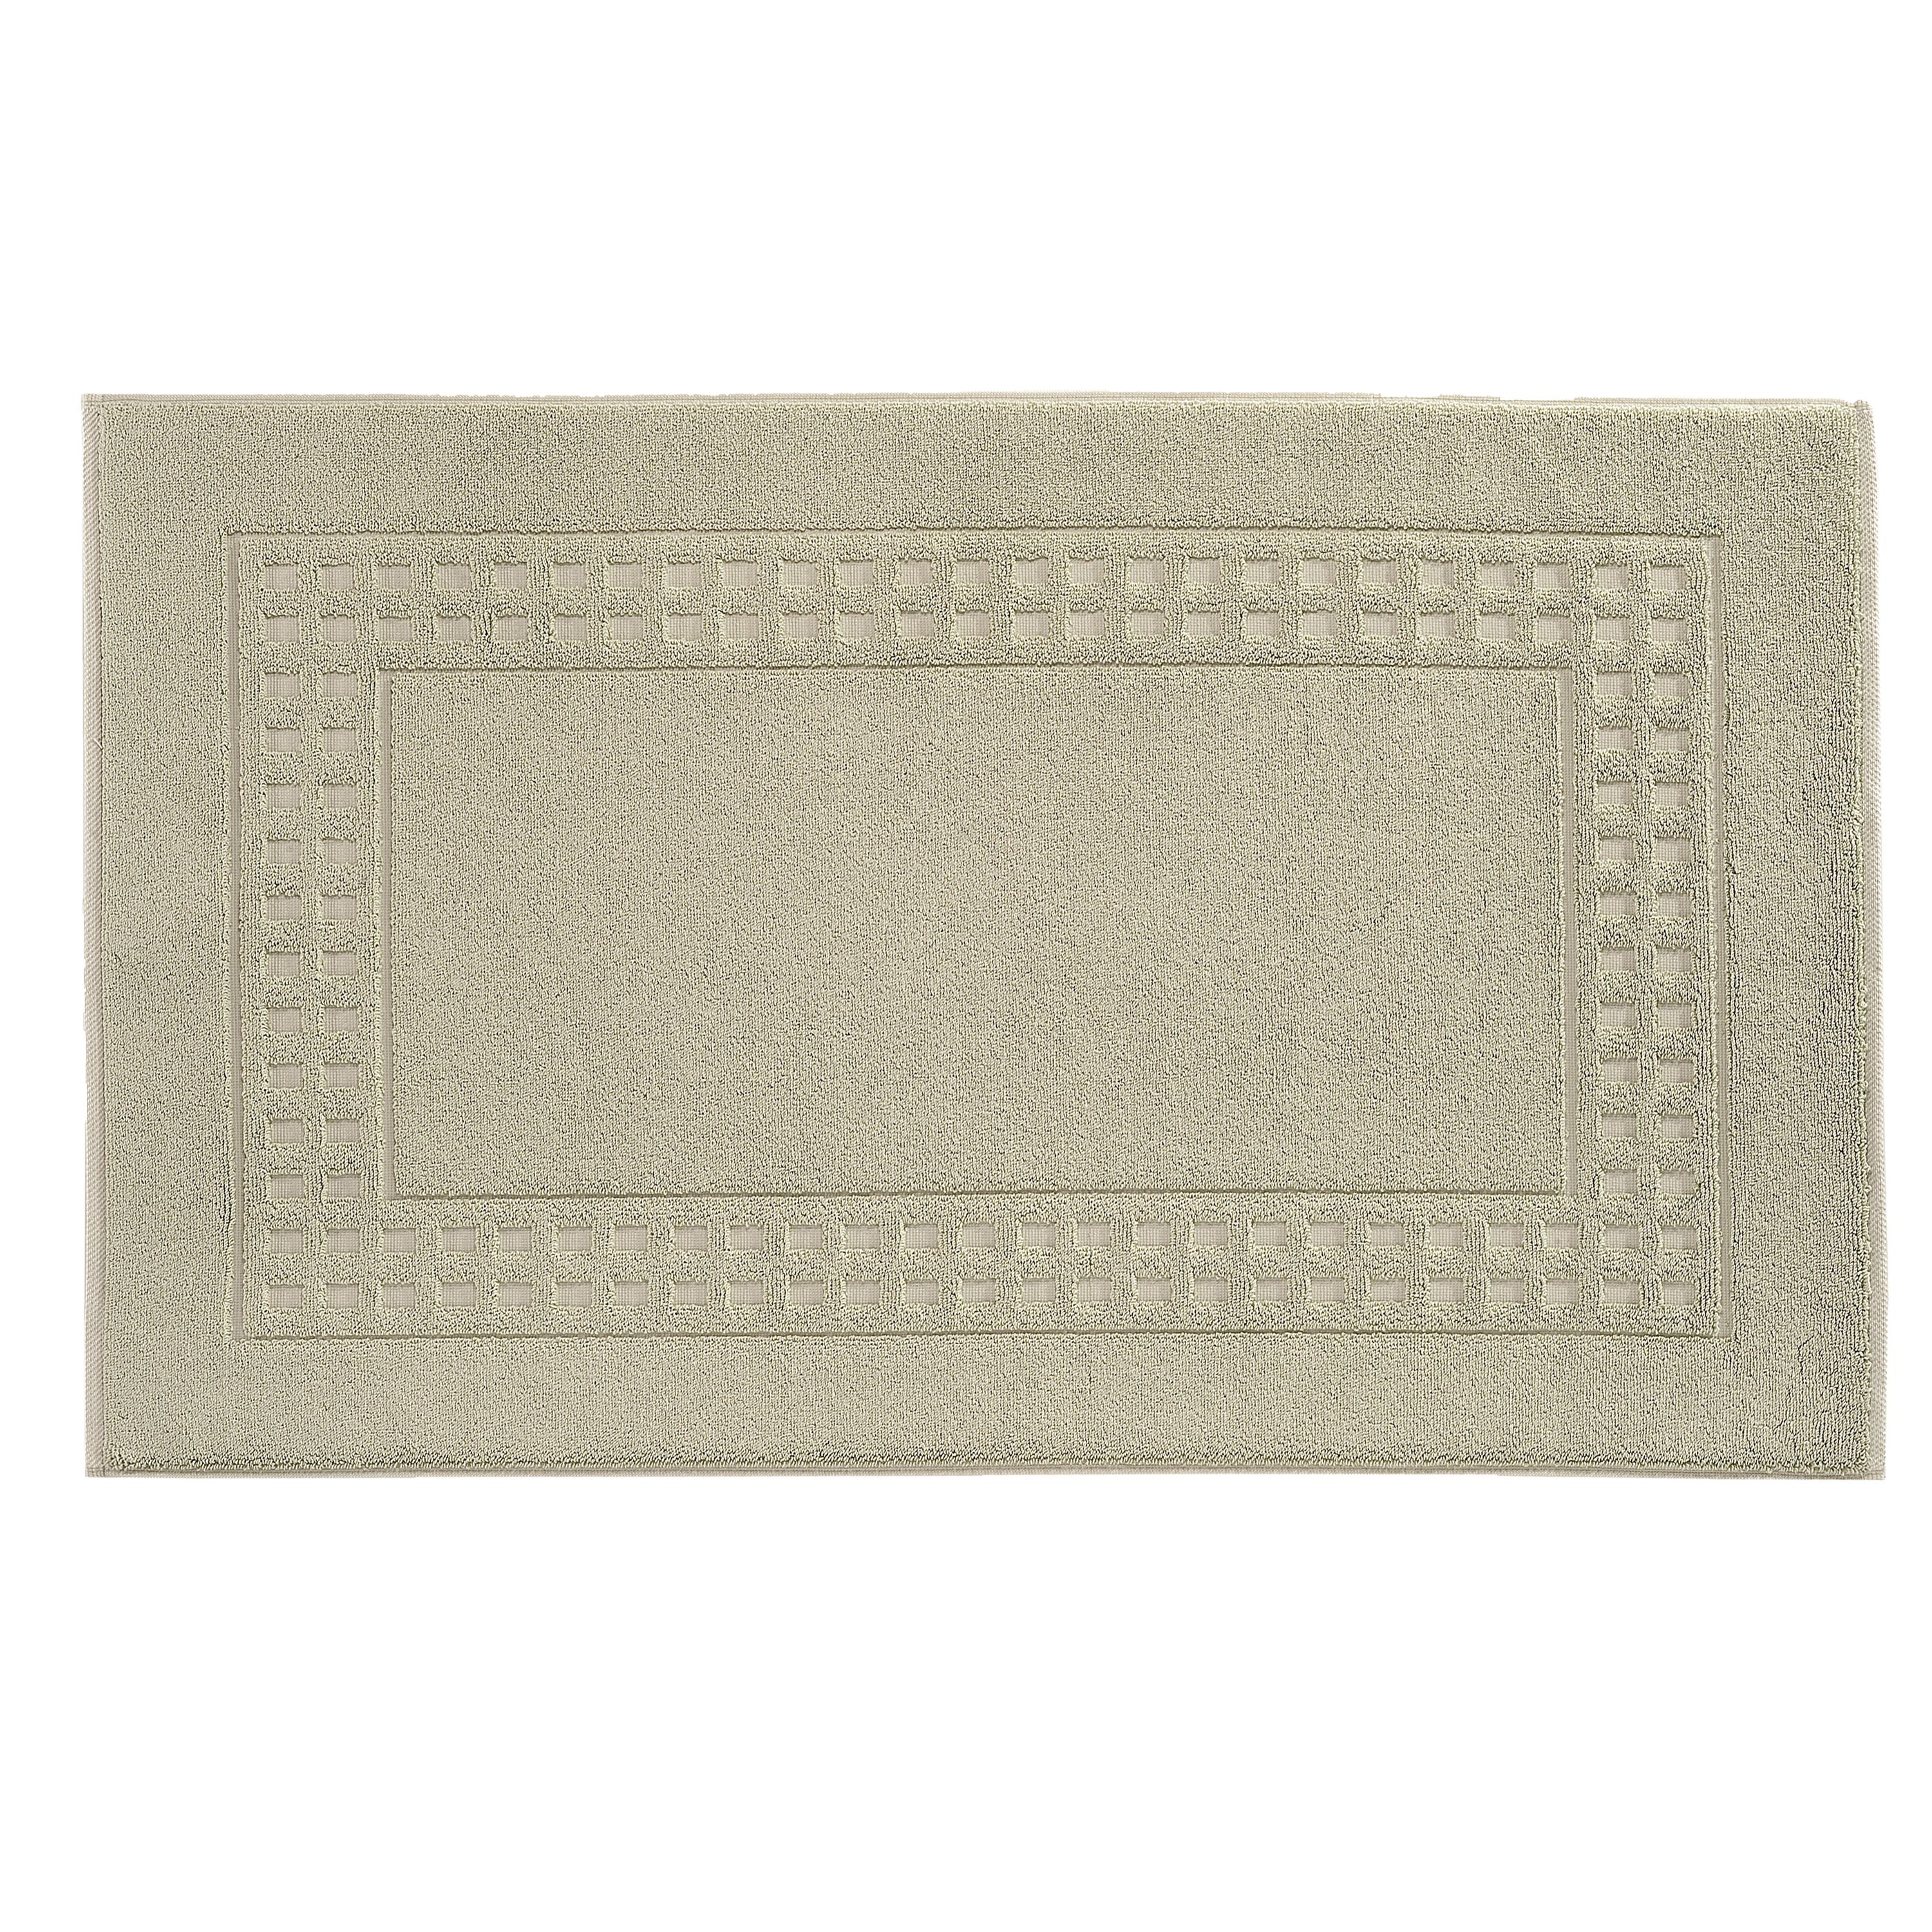 Country  bigger bath mat in tiel/ivory